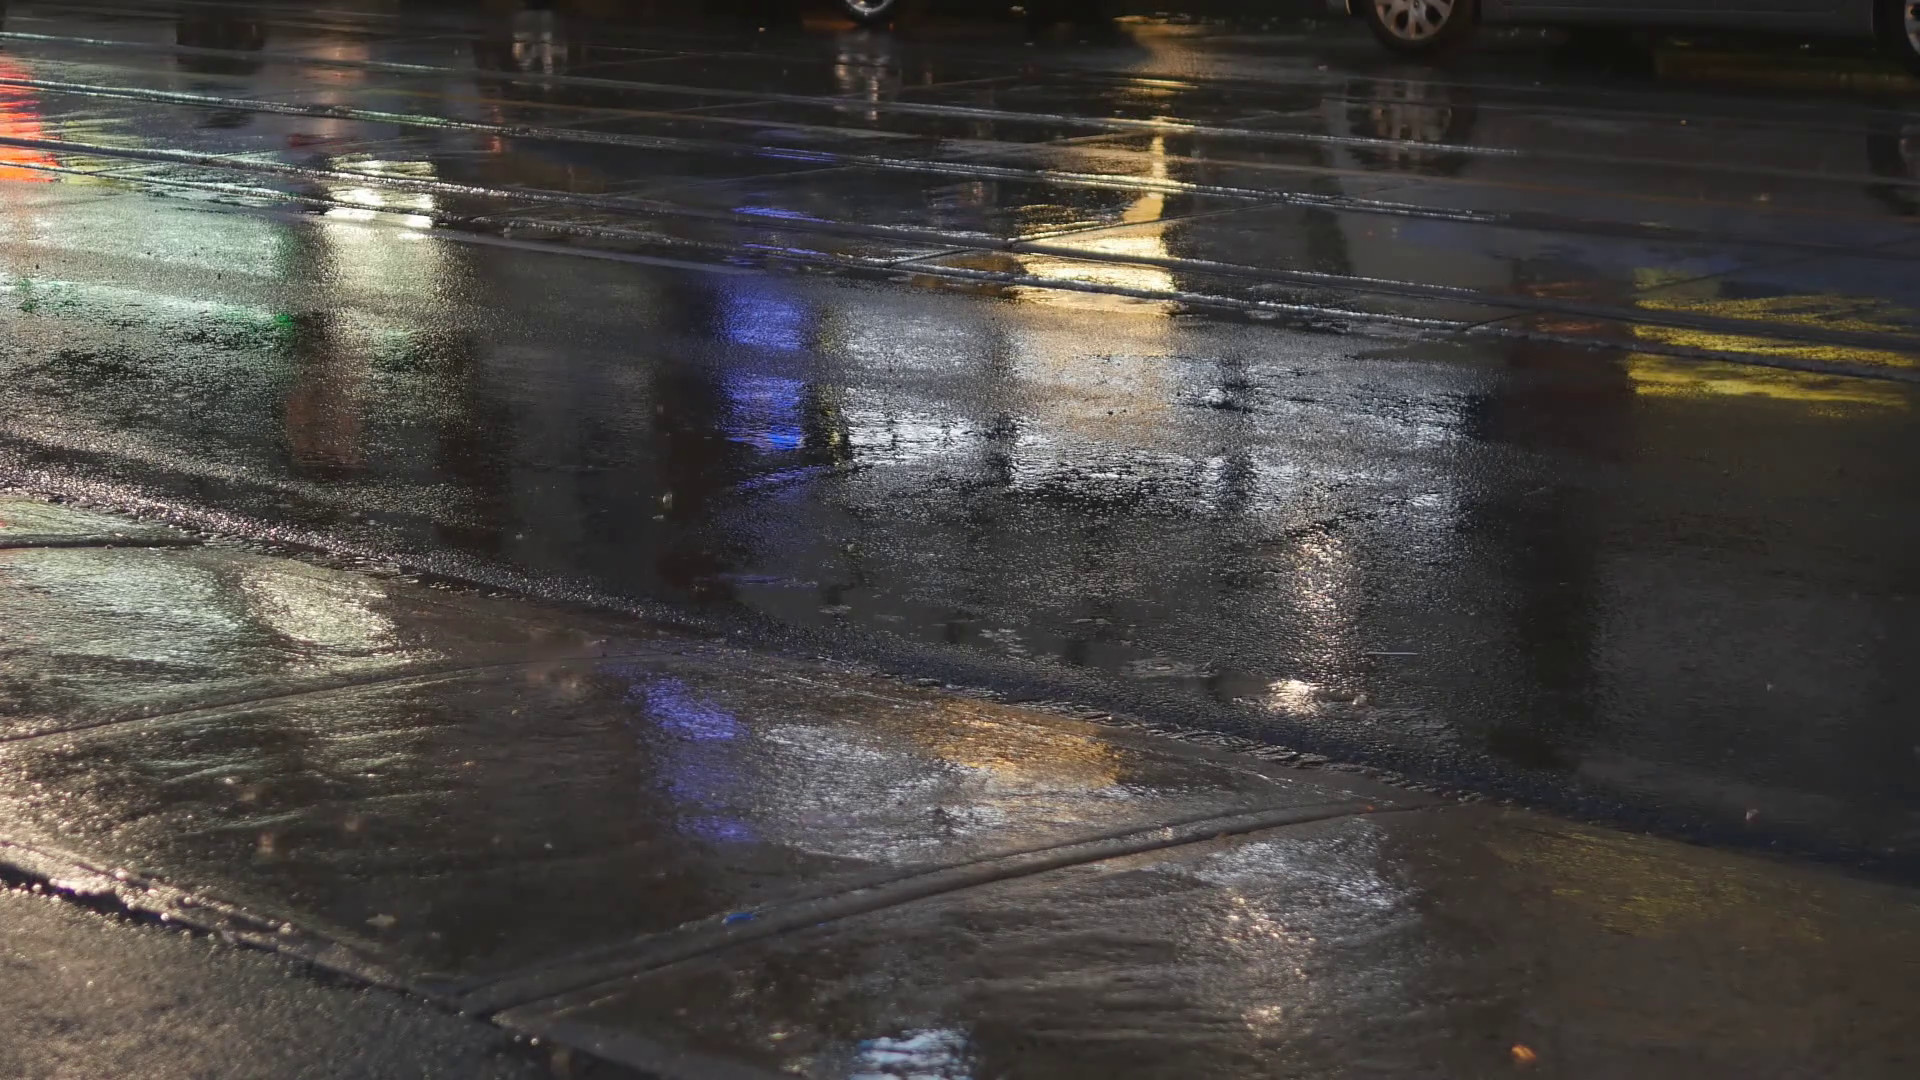 Detail of wet city street on rainy night. Traffic passing by. Good  background for text etc. Stock Video Footage – VideoBlocks